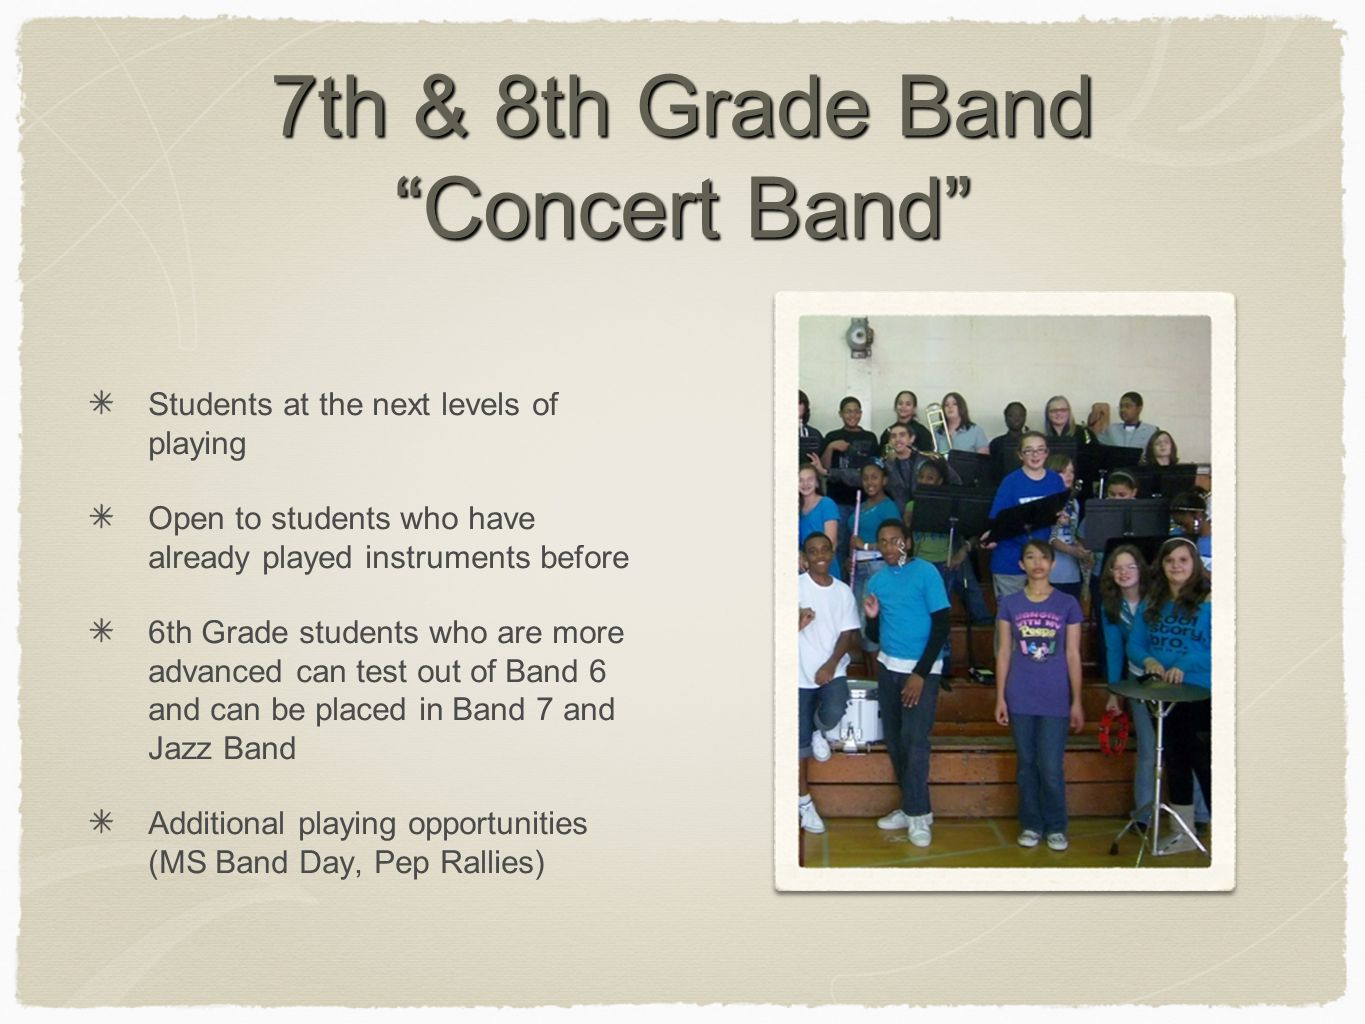 7th & 8th Grade Band Concert Band Students at the next levels of playing Open to students who have already played instruments before 6th Grade students who are more advanced can test out of Band 6 and can be placed in Band 7 and Jazz Band Additional playing opportunities (MS Band Day, Pep Rallies)